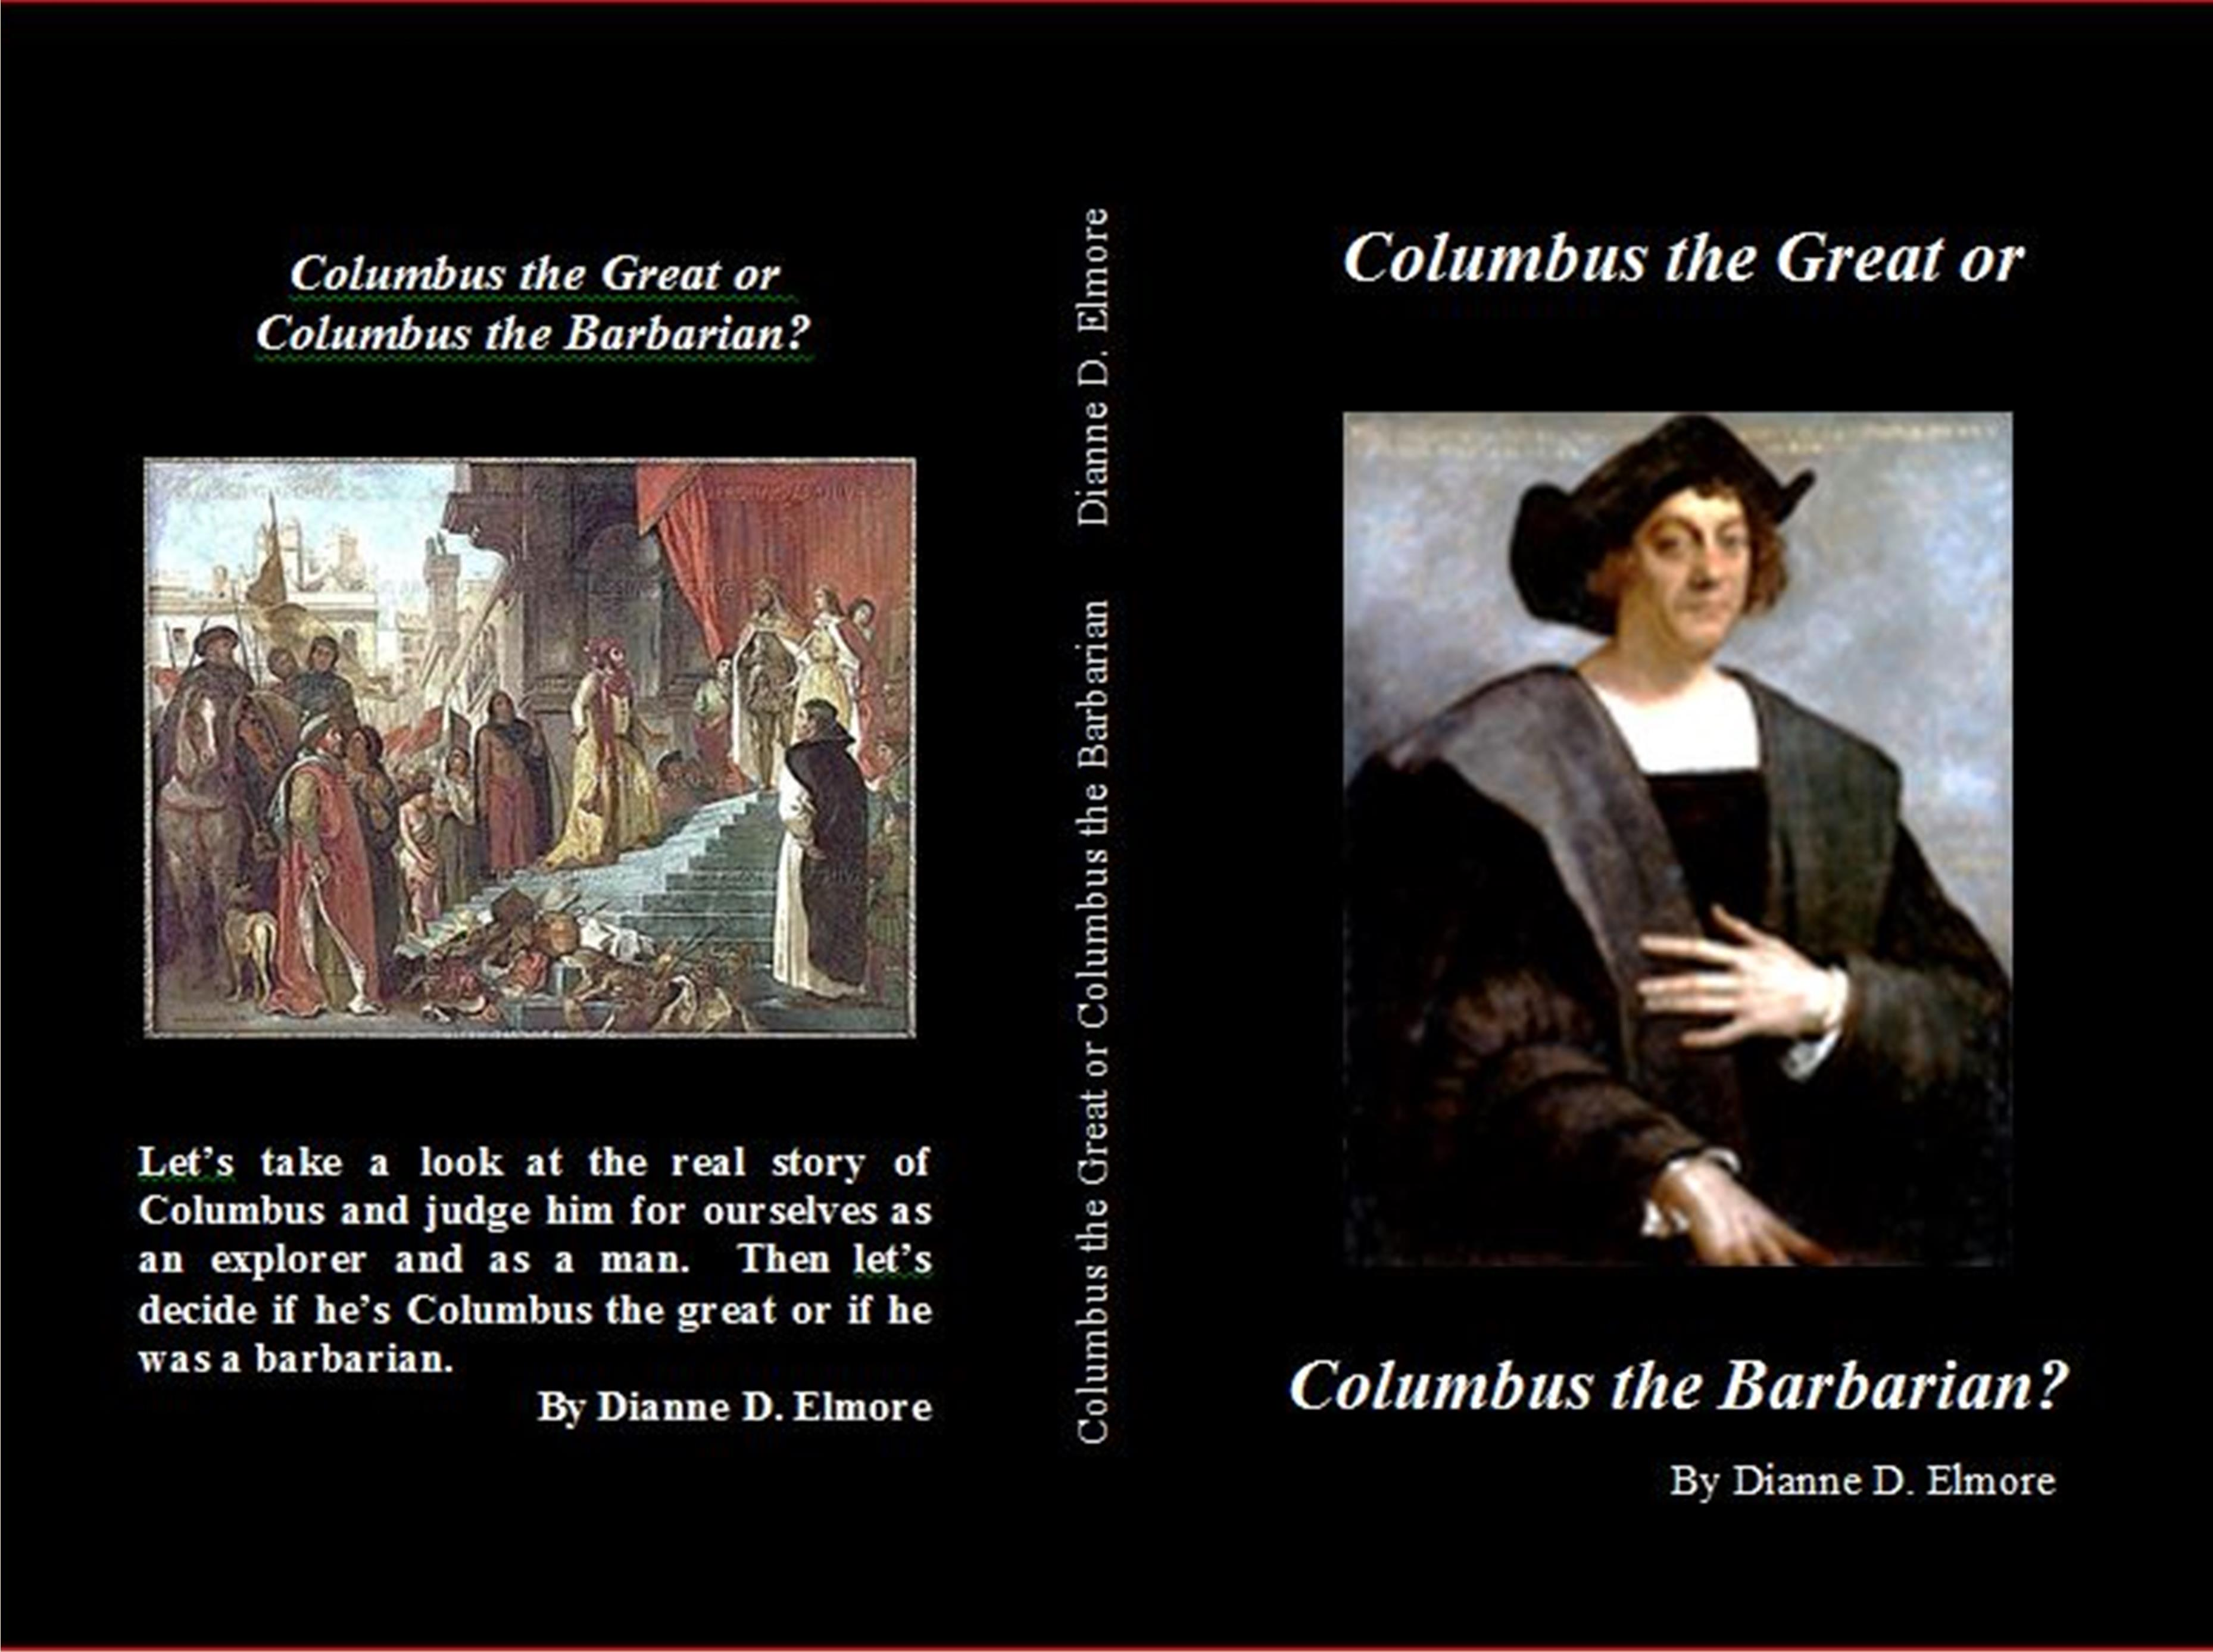 columbus the jerk Christopher columbus (31 october 1451 - 20 may 1506) was an explorer, colonizer, and navigator, born in the republic of genoa, in northwestern italy.